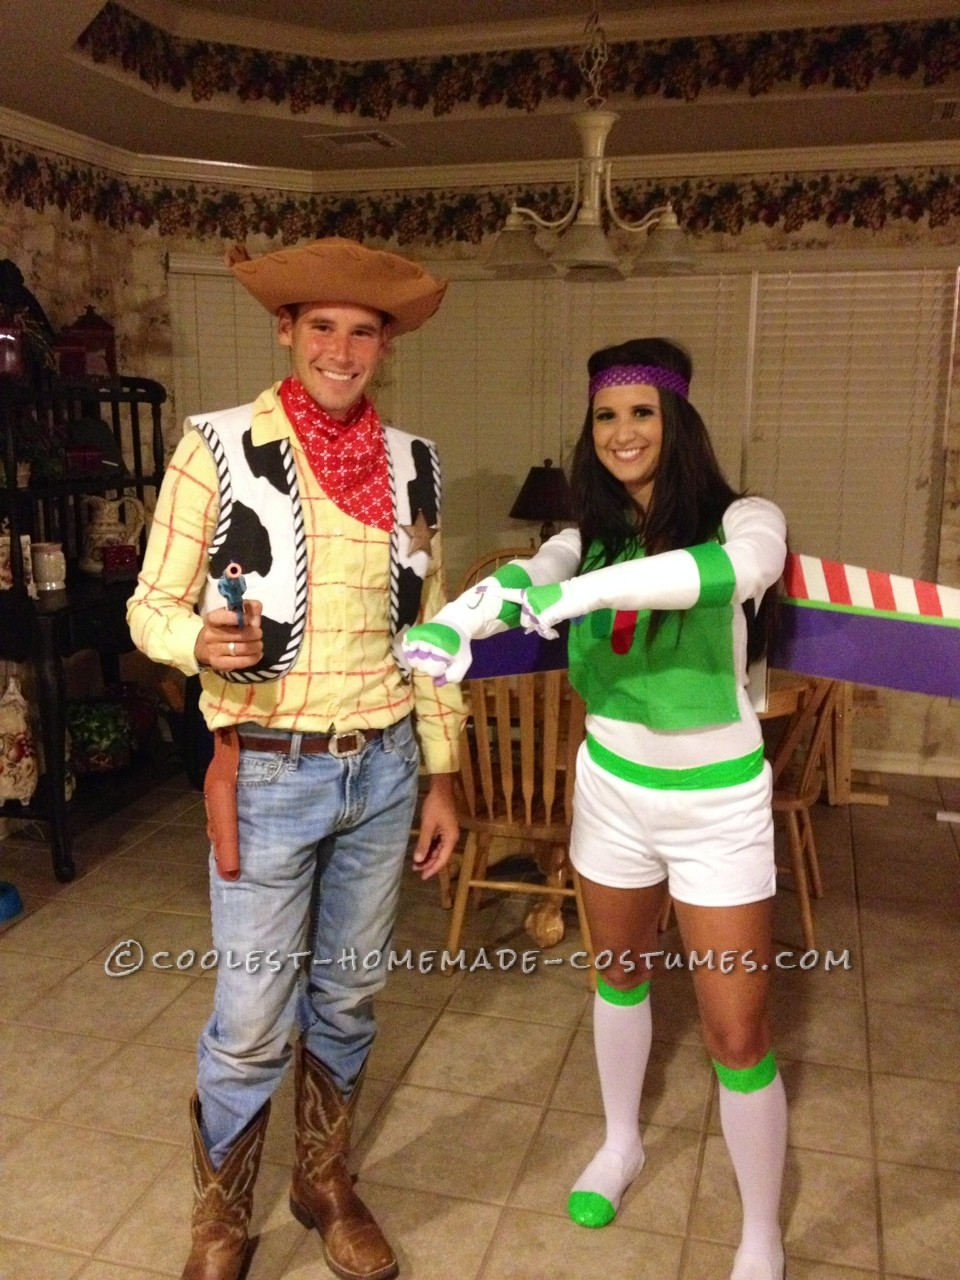 Woody was the easier costume to make out of the two. I just went out and bought a cowboy hat and a vest. My little brother had a sheriff's badg